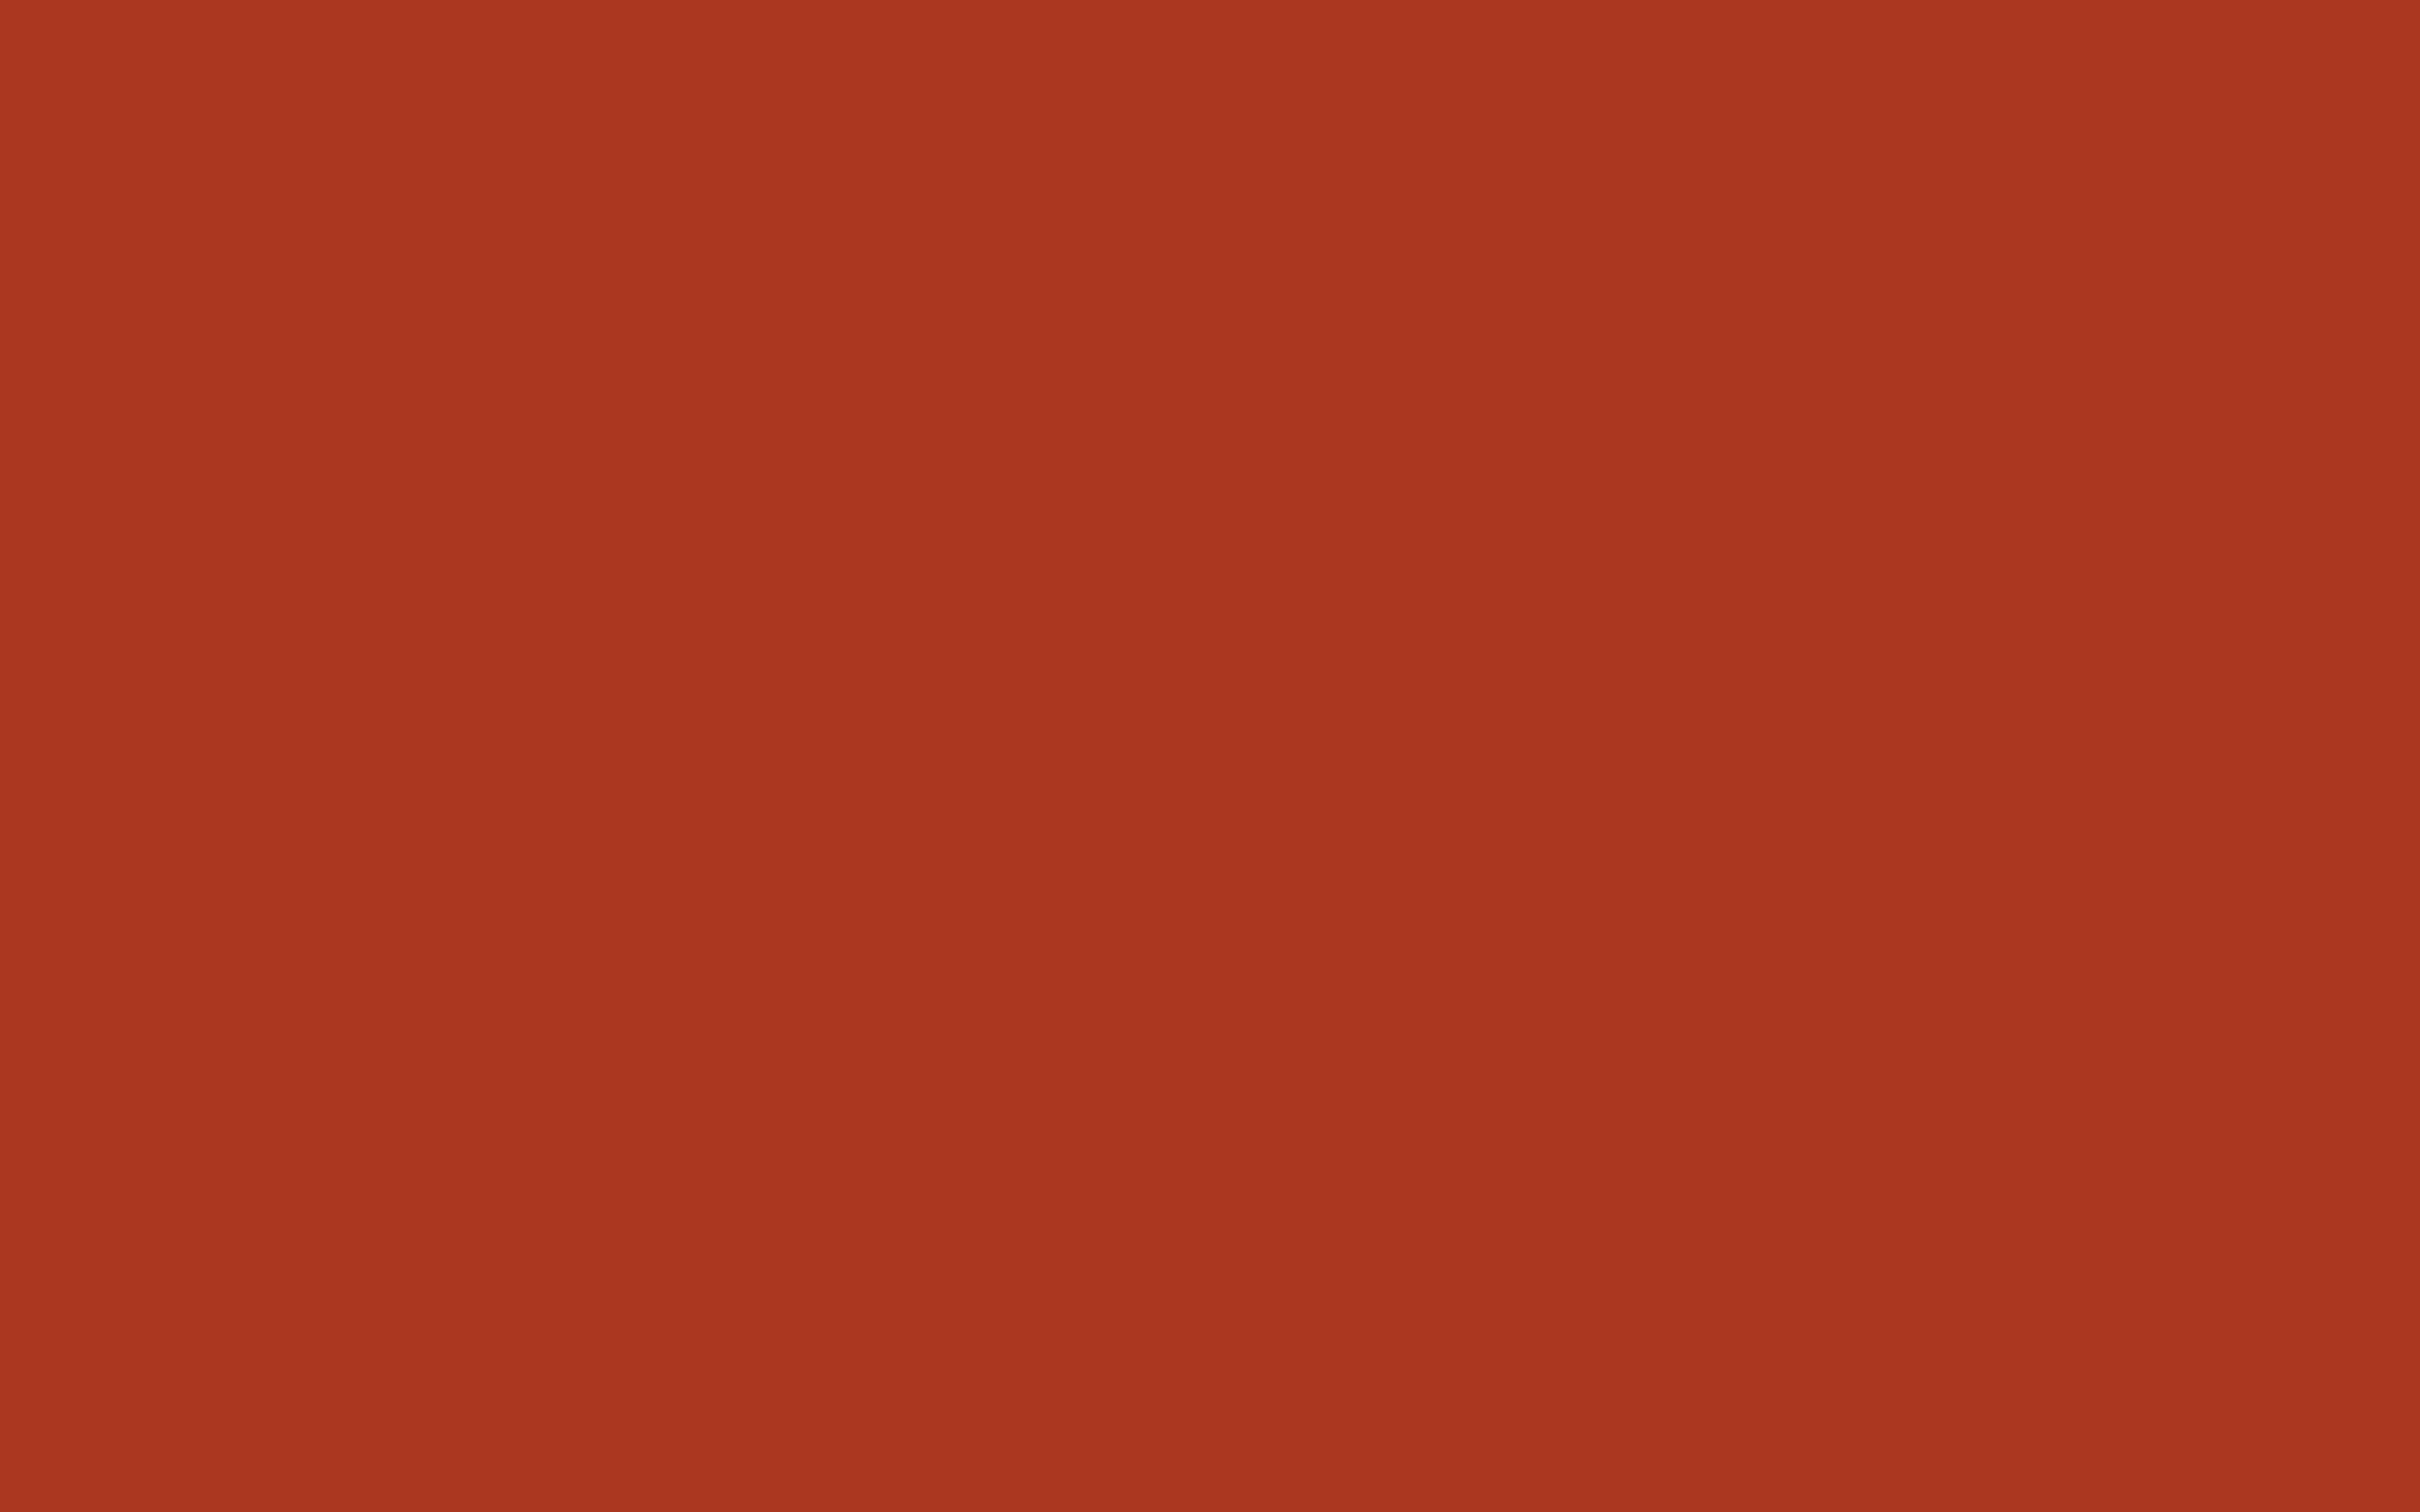 2560x1600 Chinese Red Solid Color Background